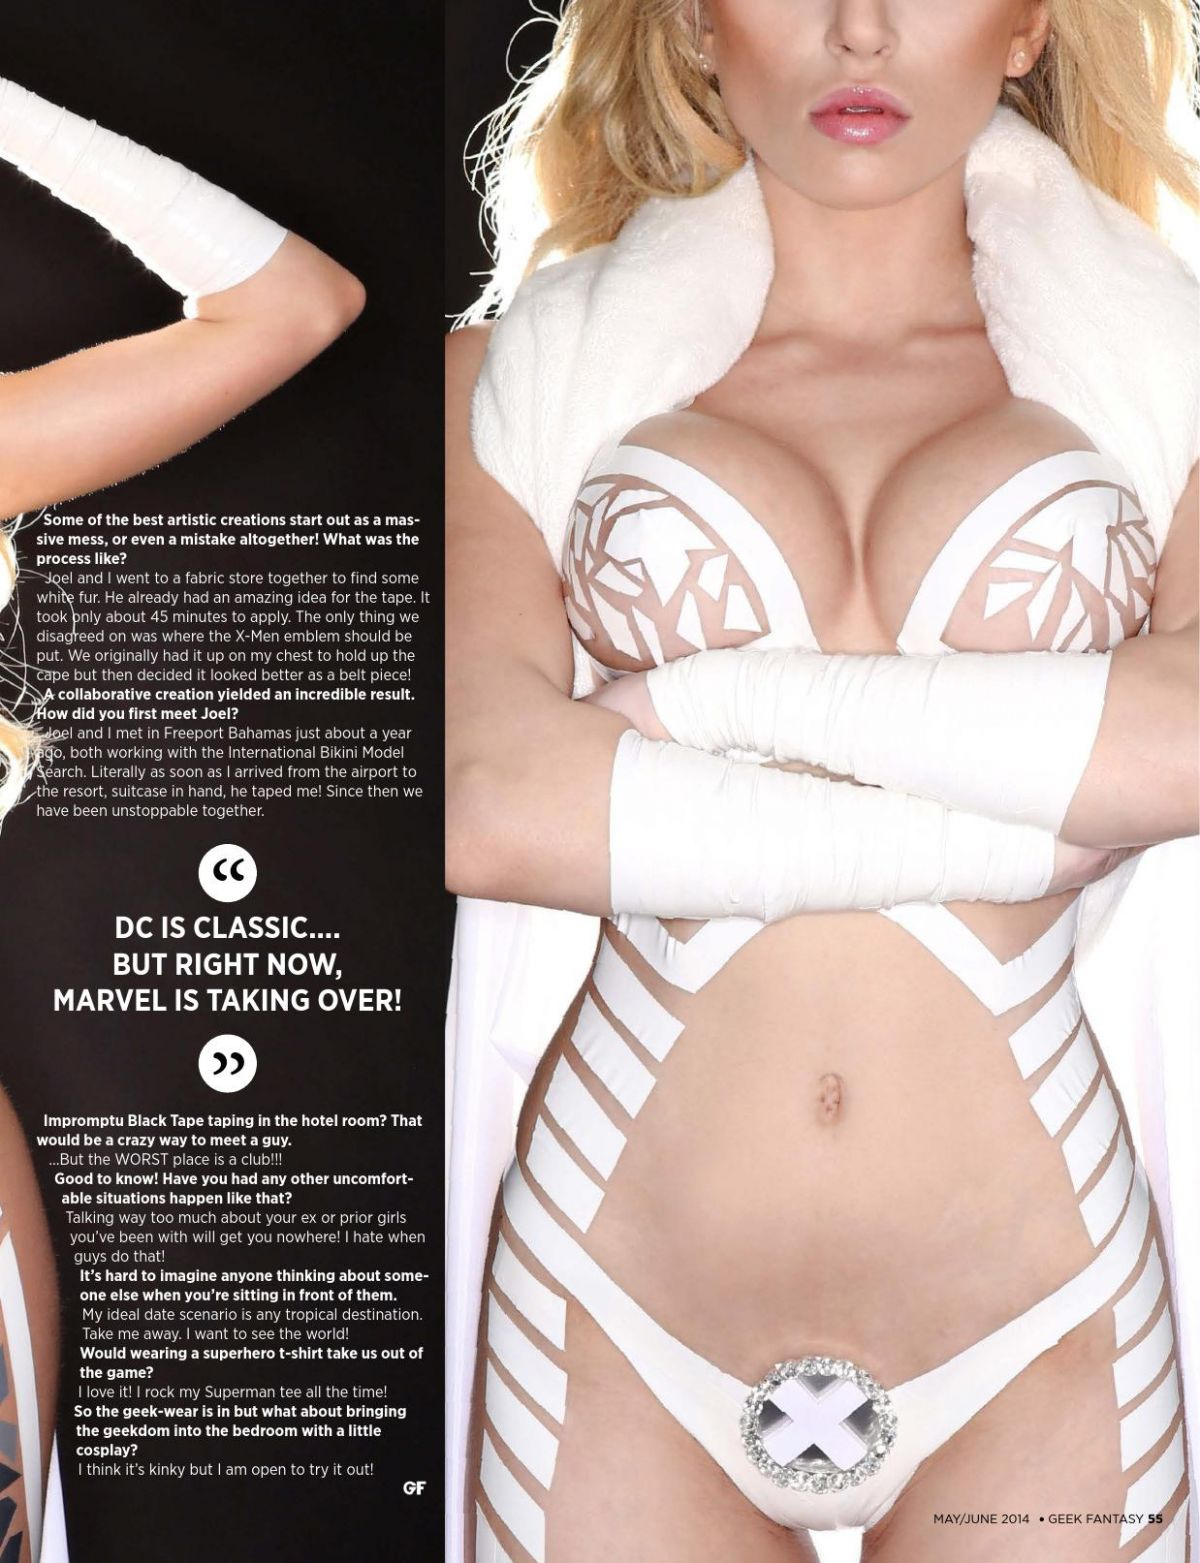 khloe-terae-in-geek-fantasy-magazine-may-june-2014-issue_8.jpg - 244.34 KB